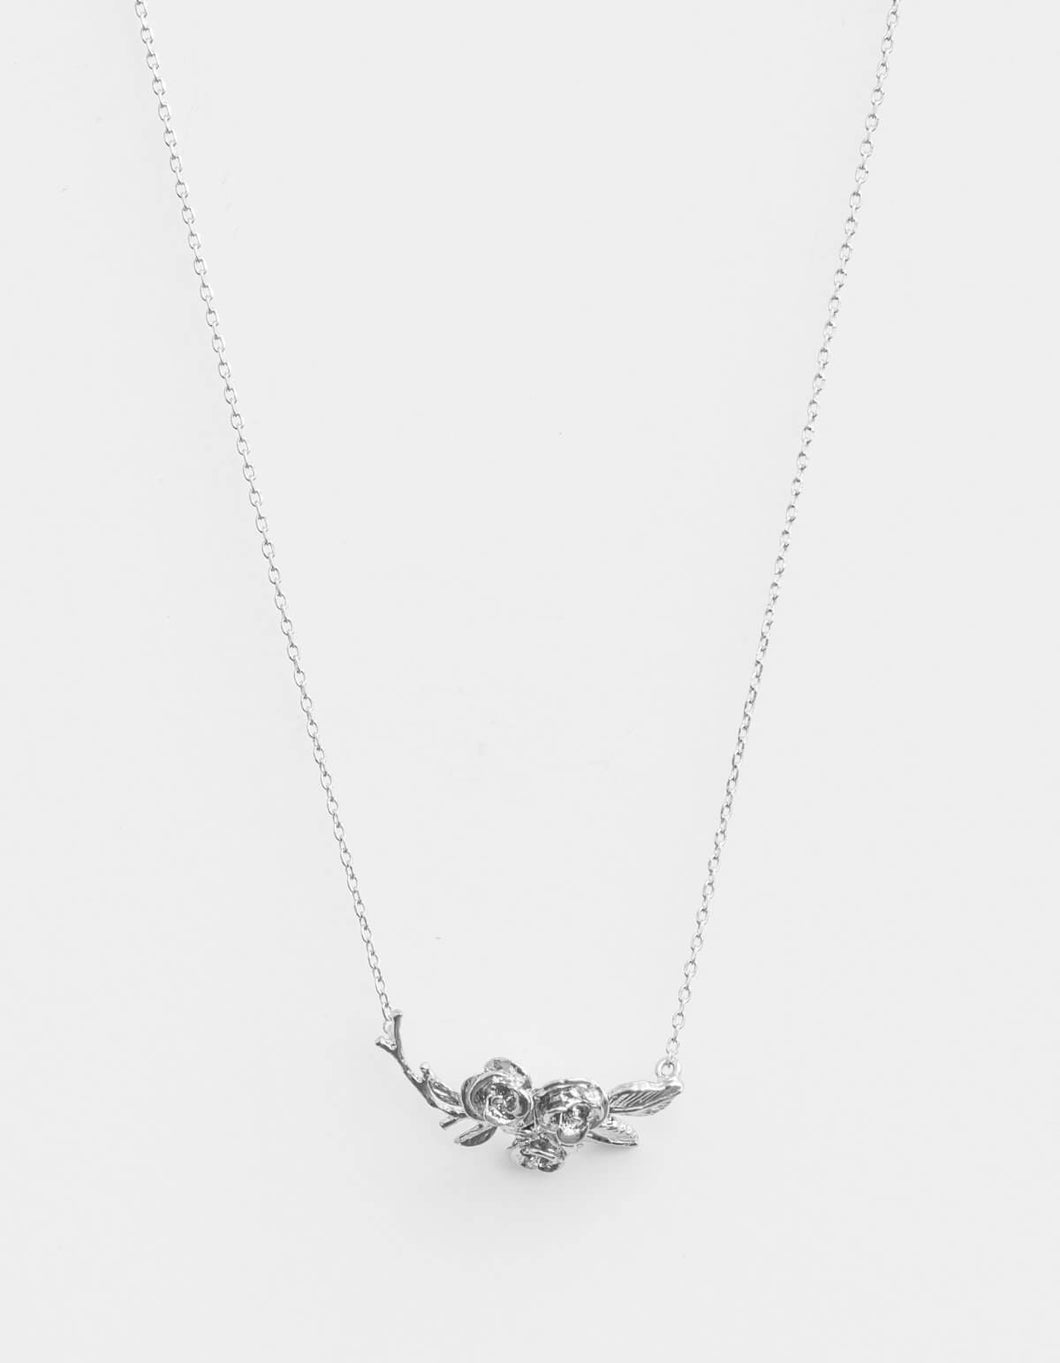 Silver Posey Necklace